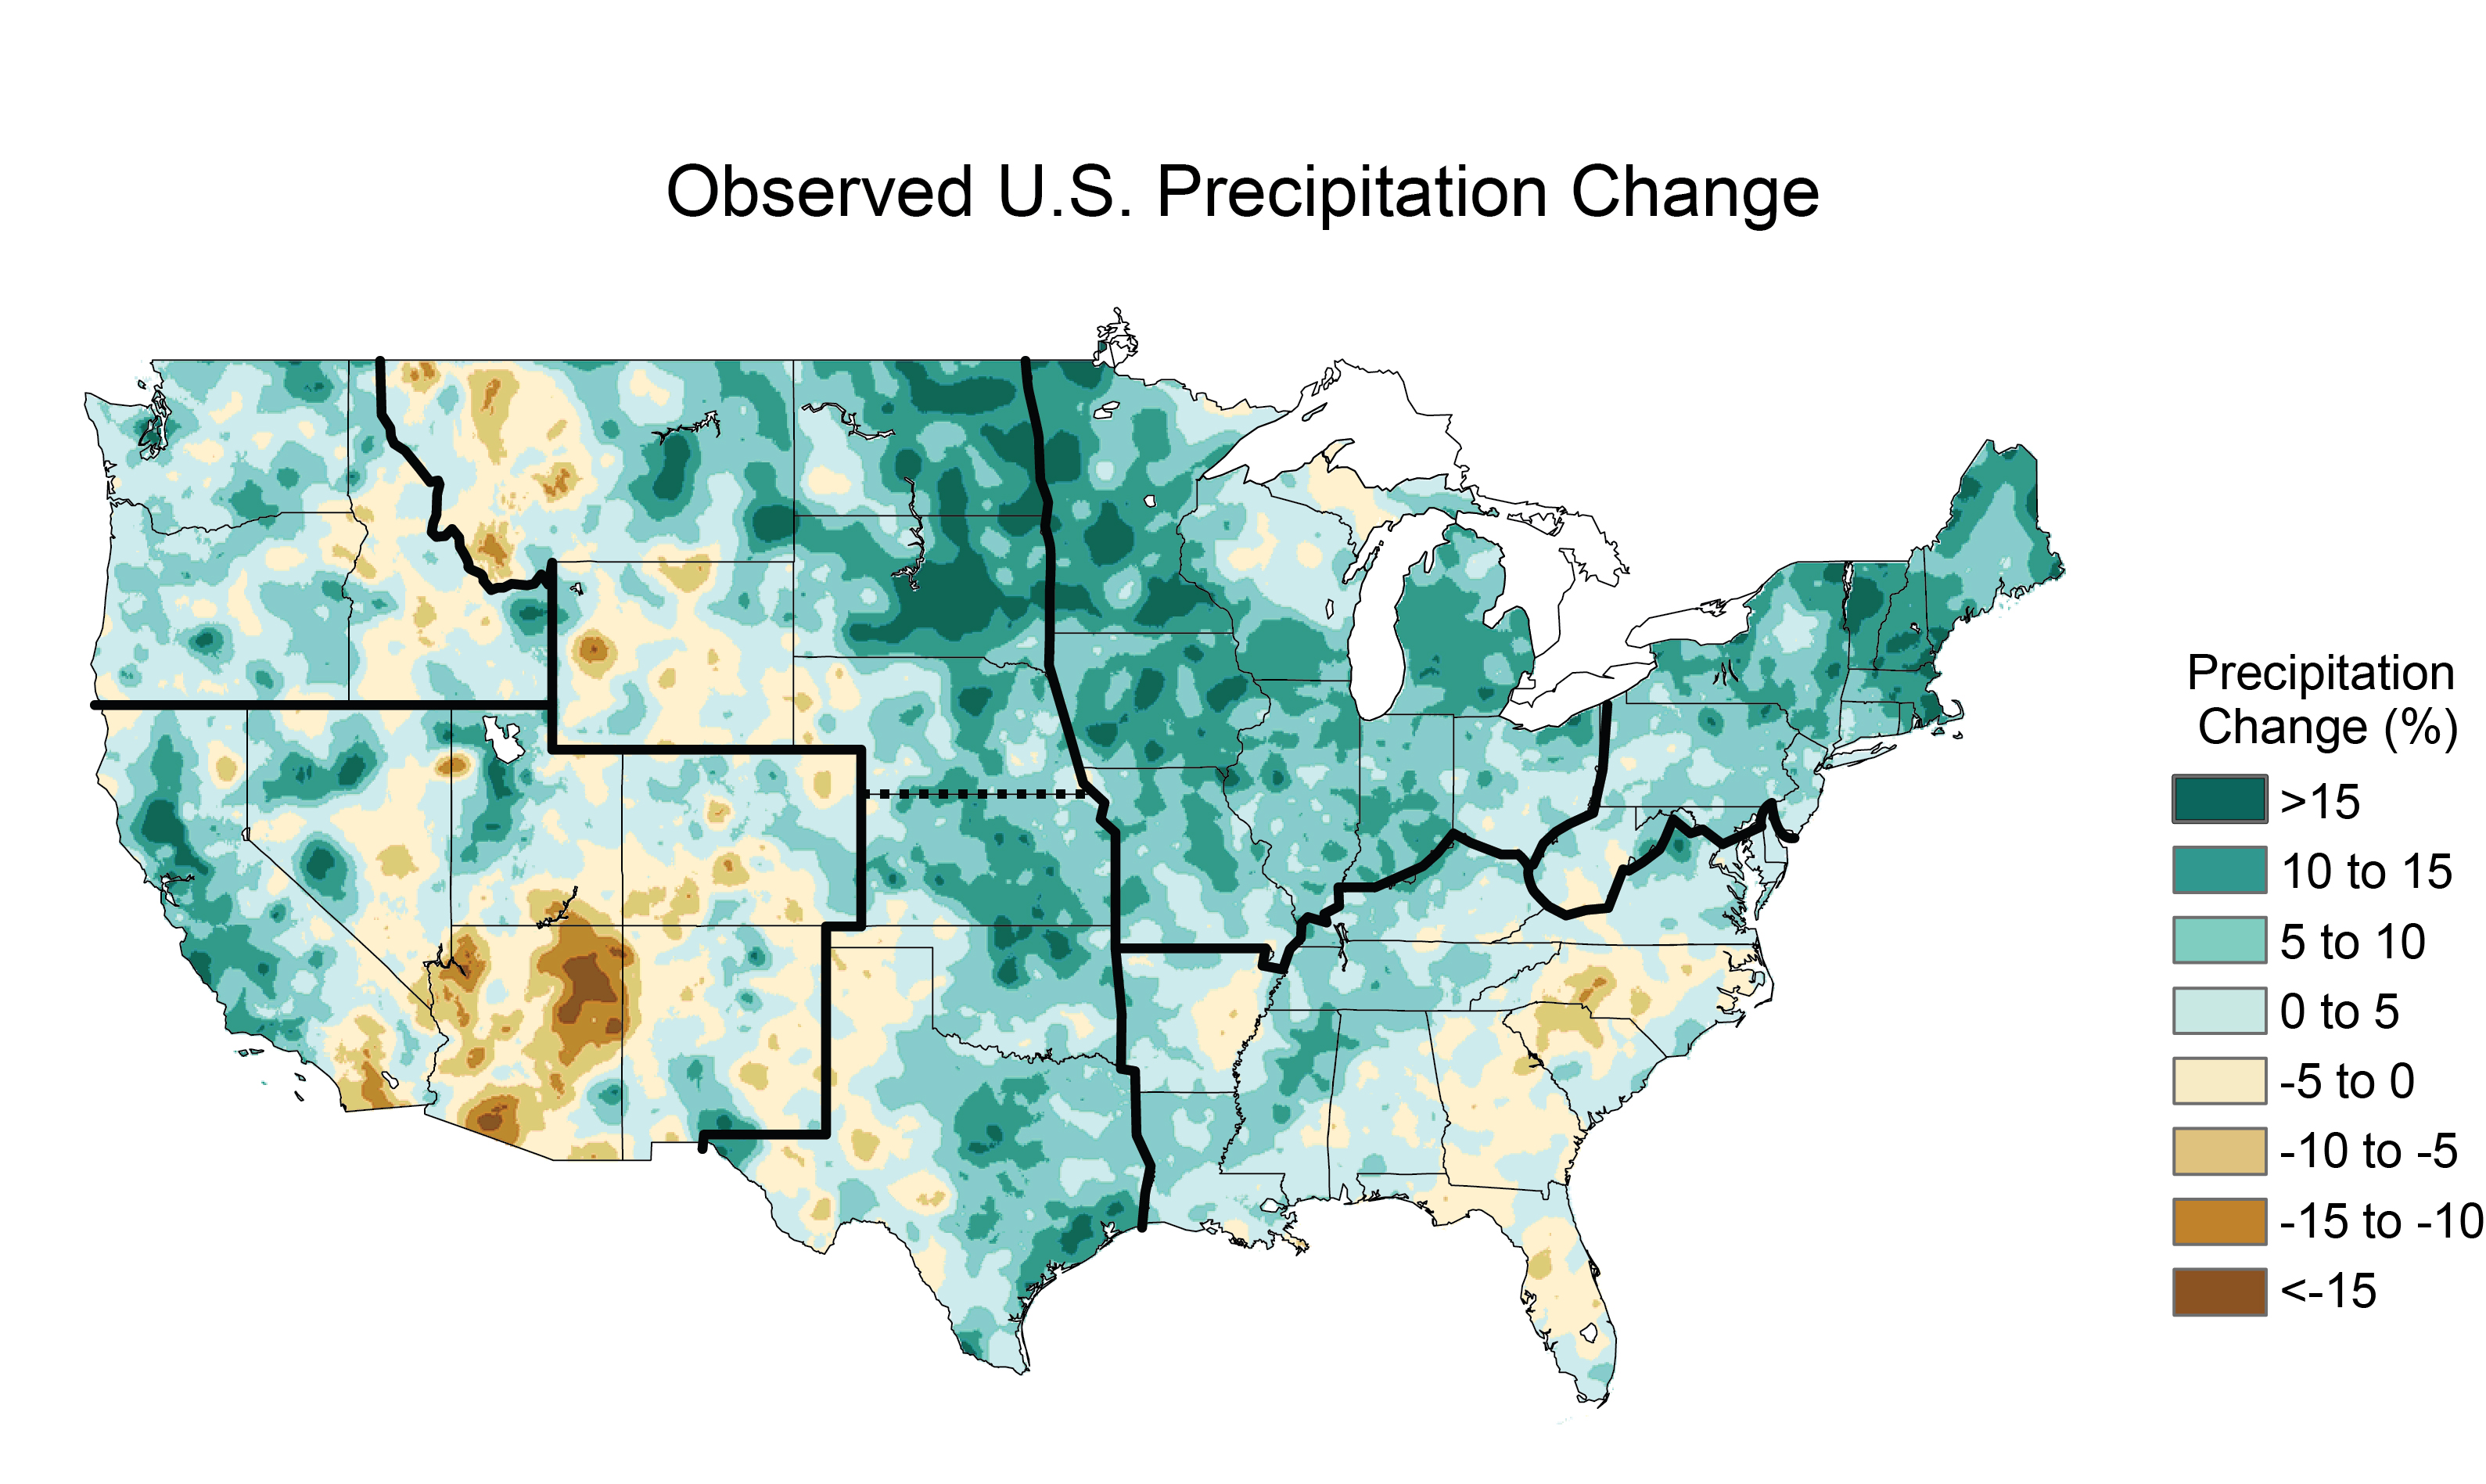 Climate Changes In The United States Image Of The Day - United states precipitation map